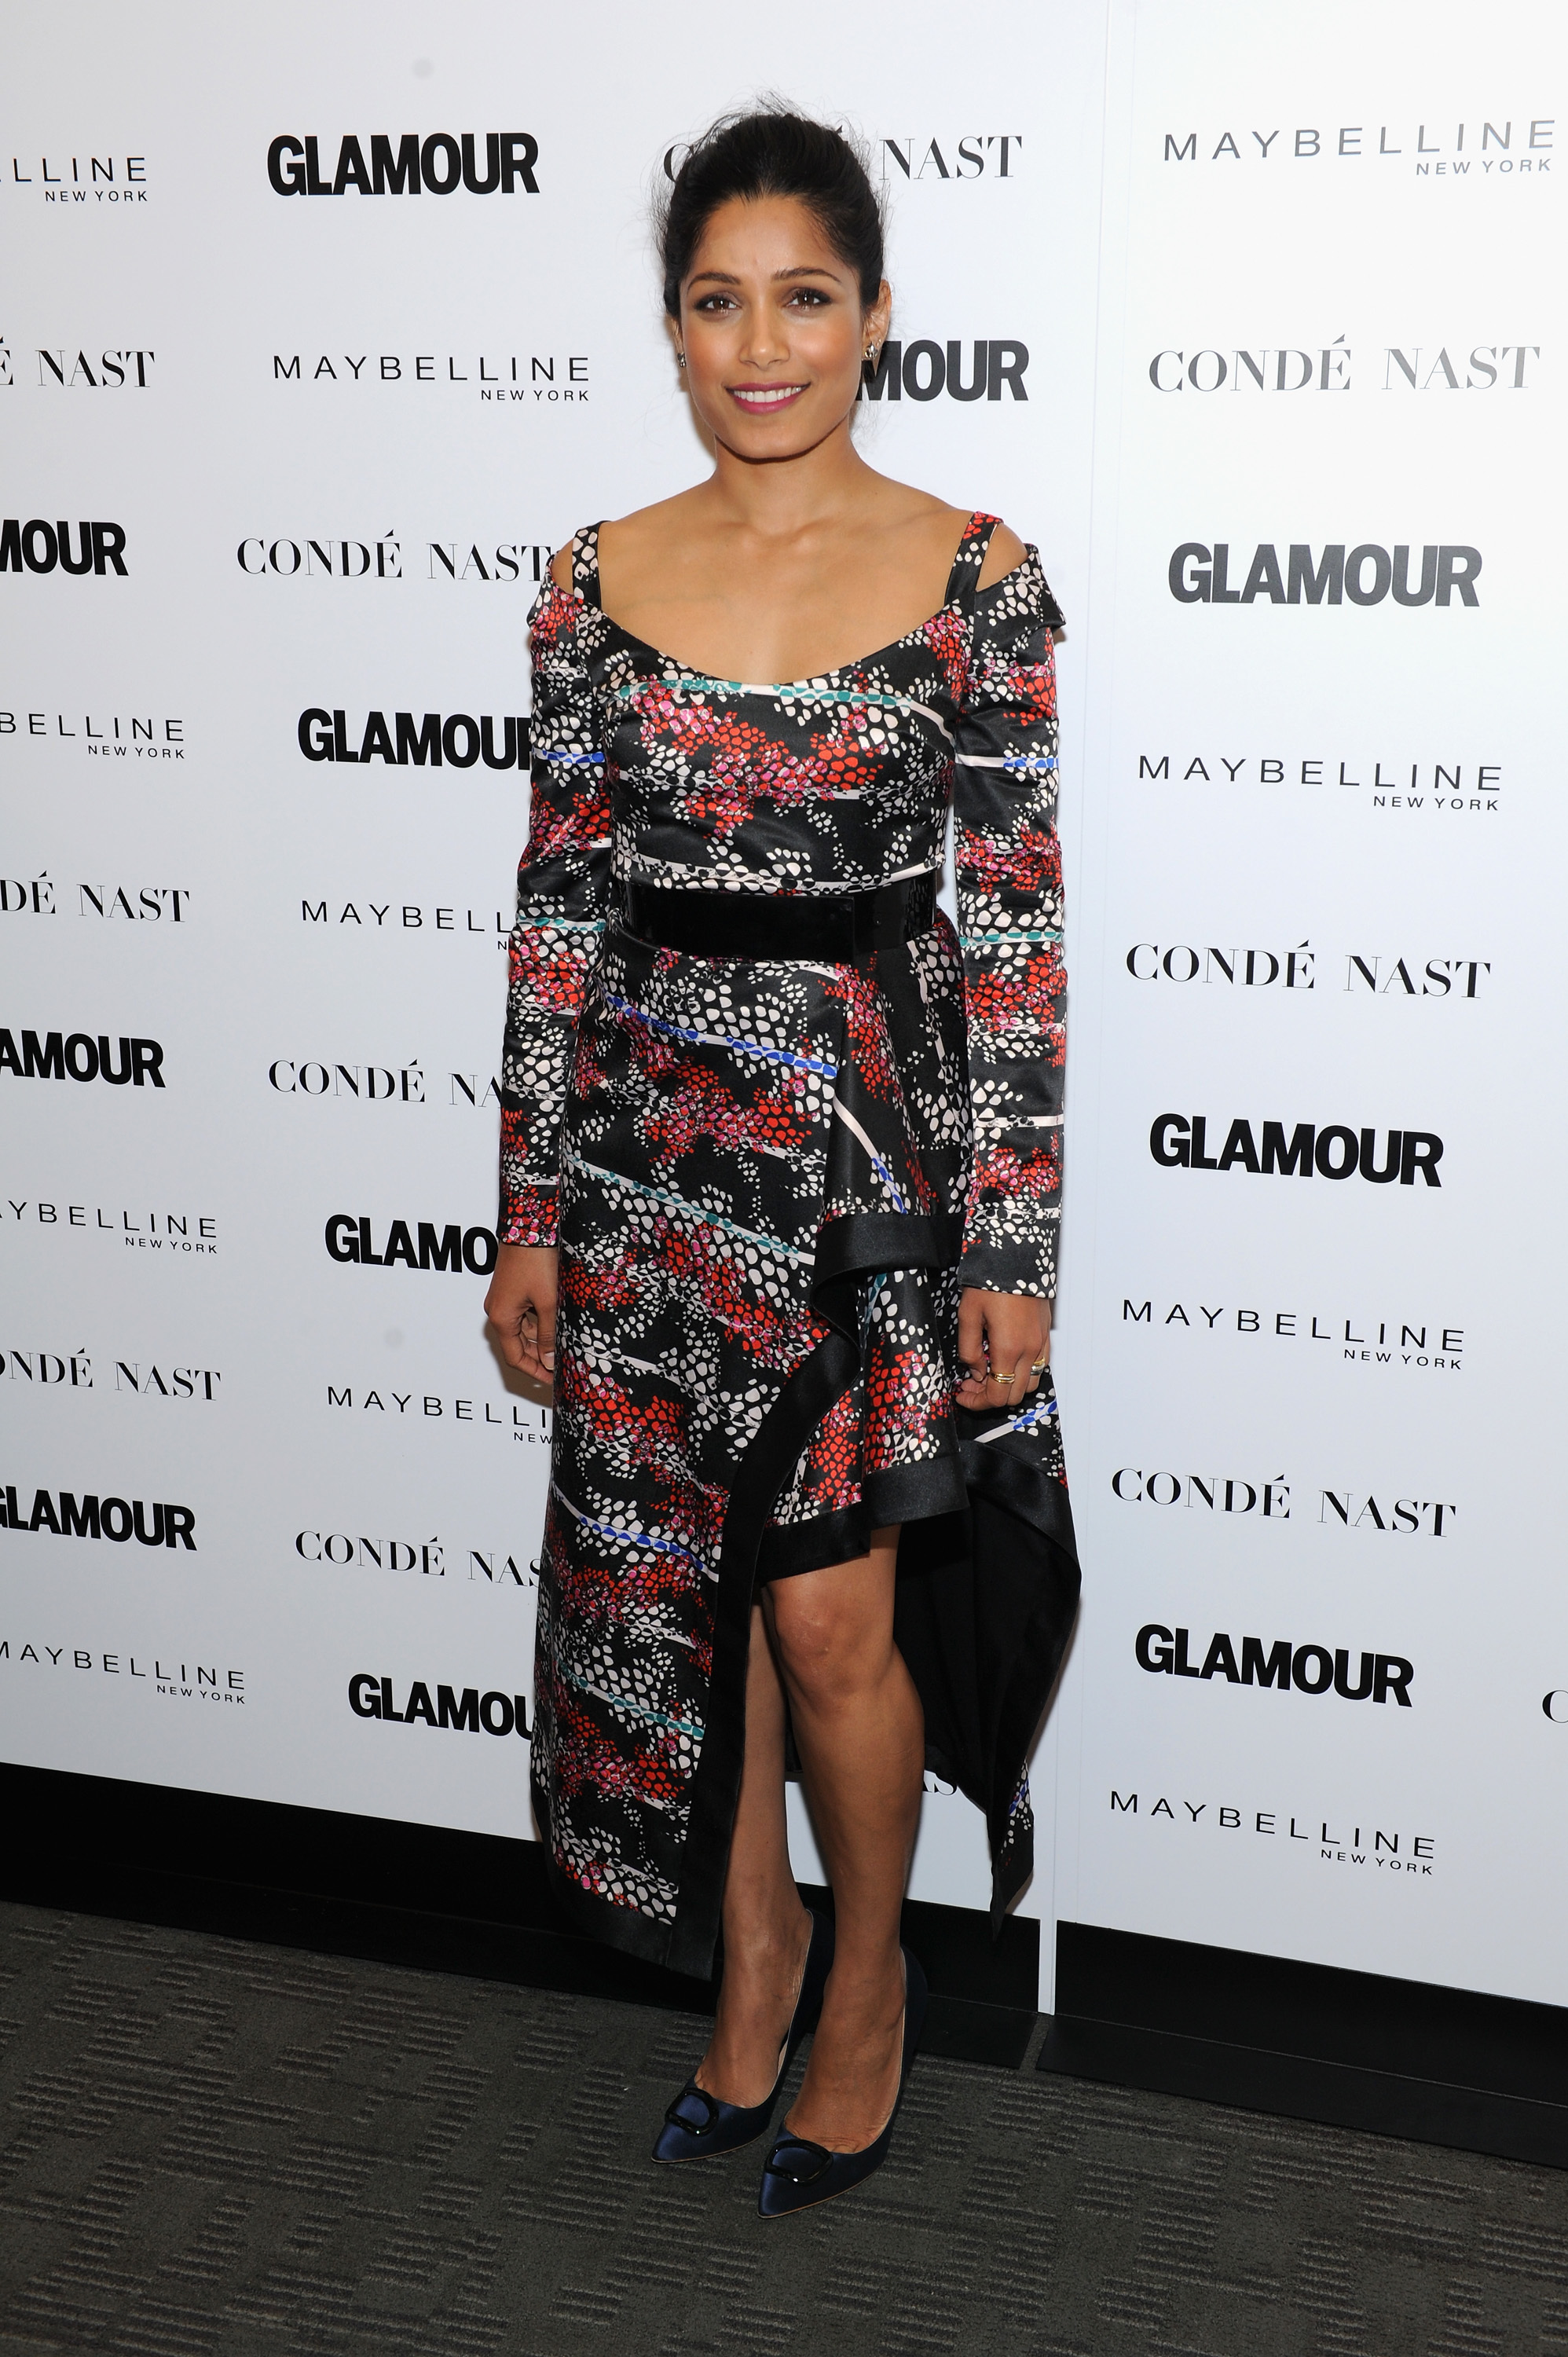 Freida Pinto attends Glamour's The Girl Project Rally on the International Day of the Girl in New York City on Oct. 11, 2017.